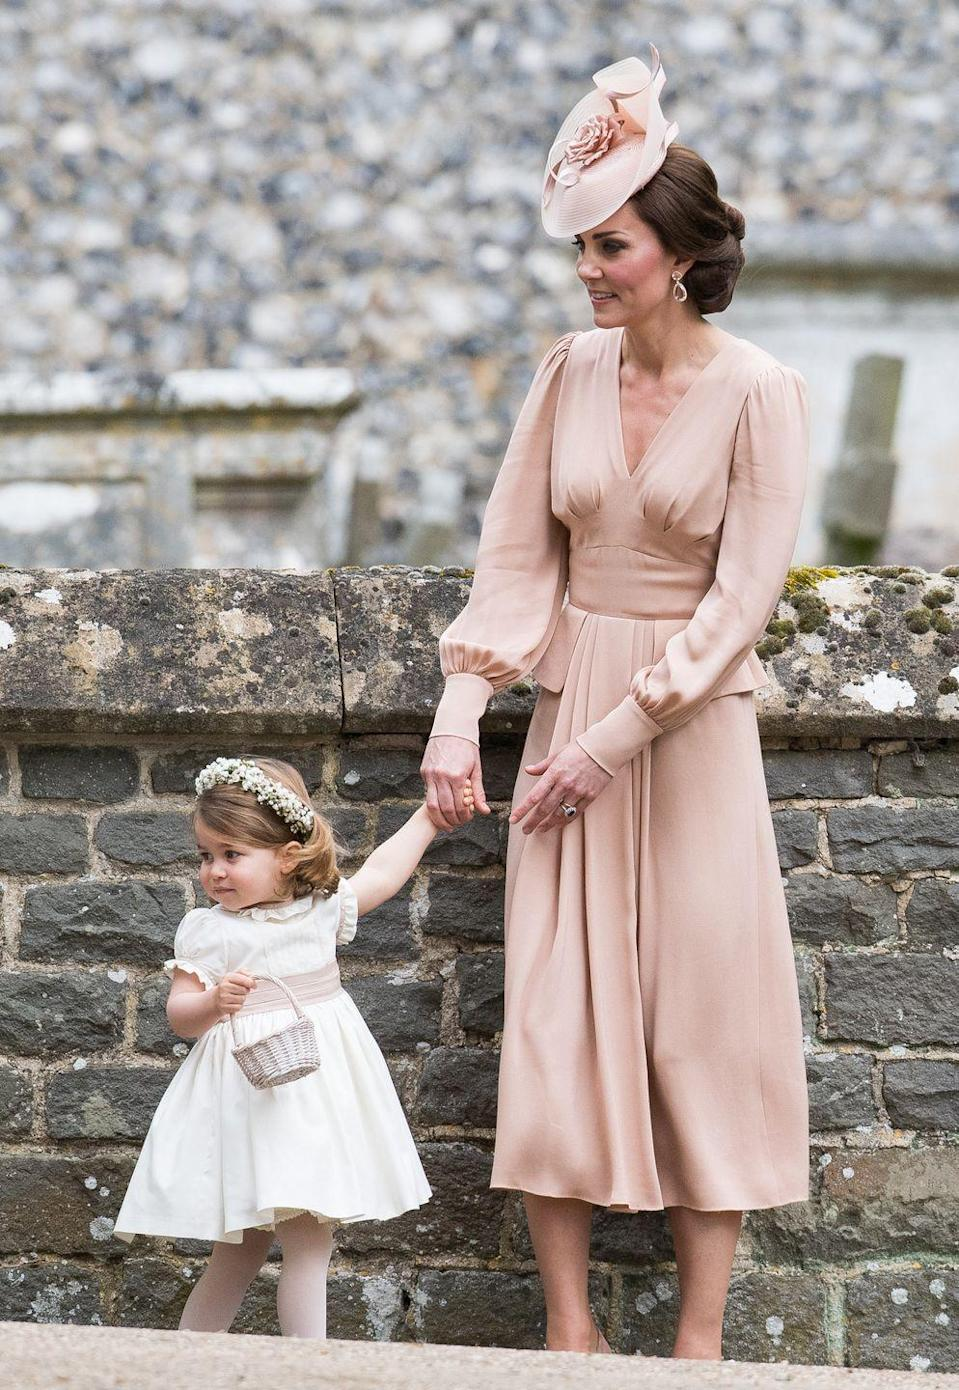 <p>The Duchess of Cambridge holds hands with daughter Princess Charlotte, then 2, who was a bridesmaid at Pippa Middleton's wedding in May 2015. This was Princess Charlotte and Prince George's first time being bridesmaid and pageboy in a wedding.</p>